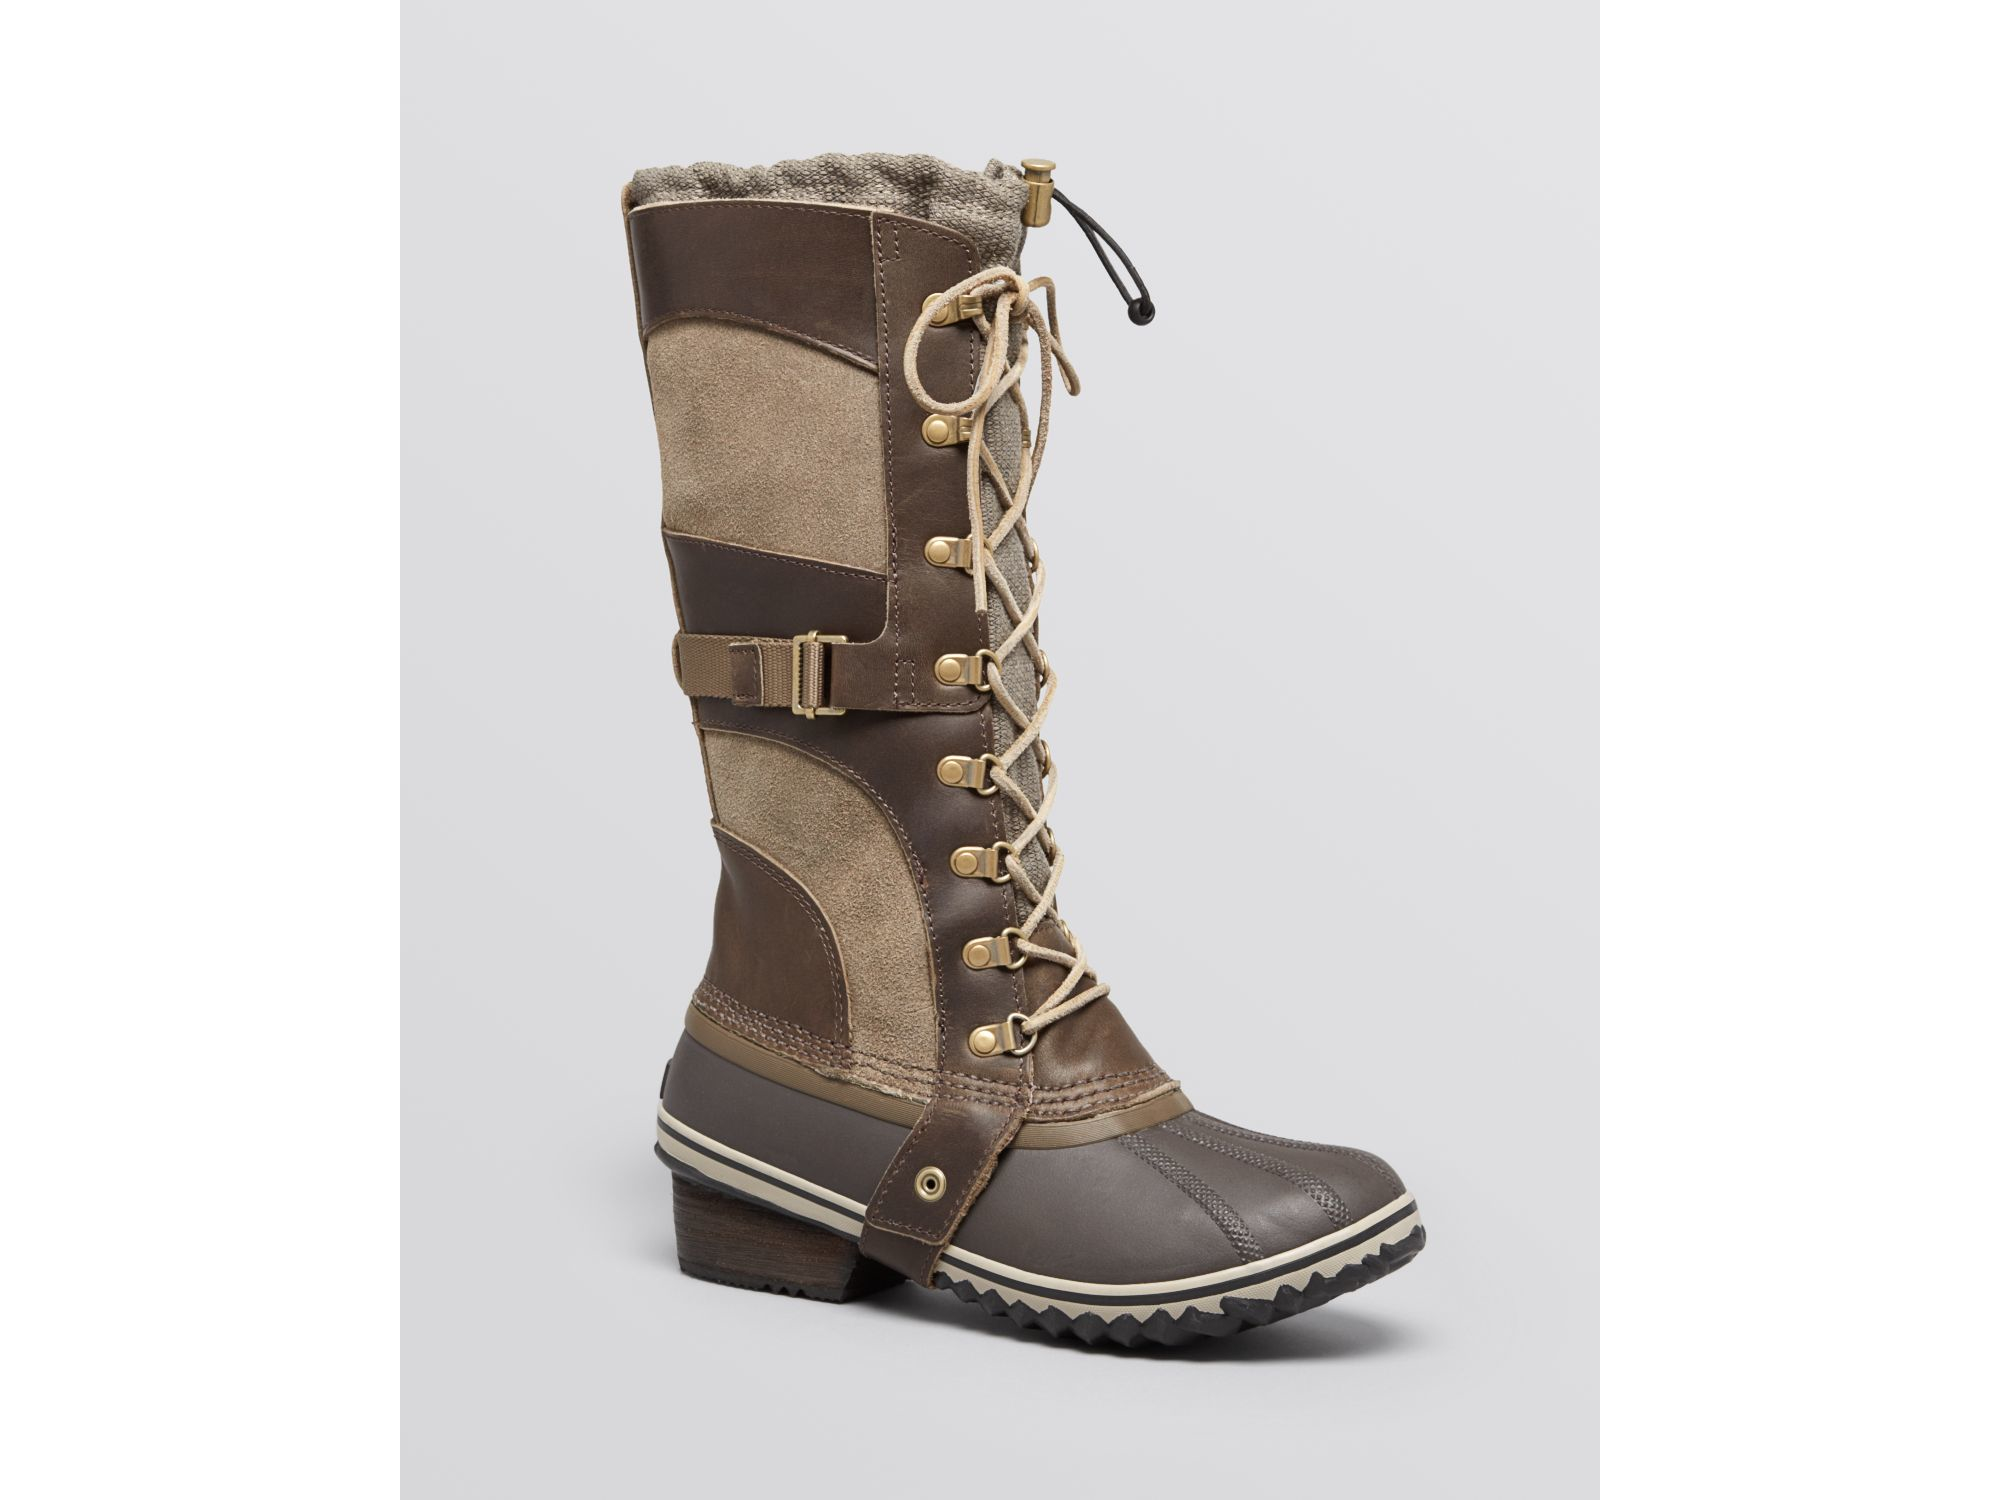 Sorel Conquest Carly Lace Up Cold Weather Boots in Green